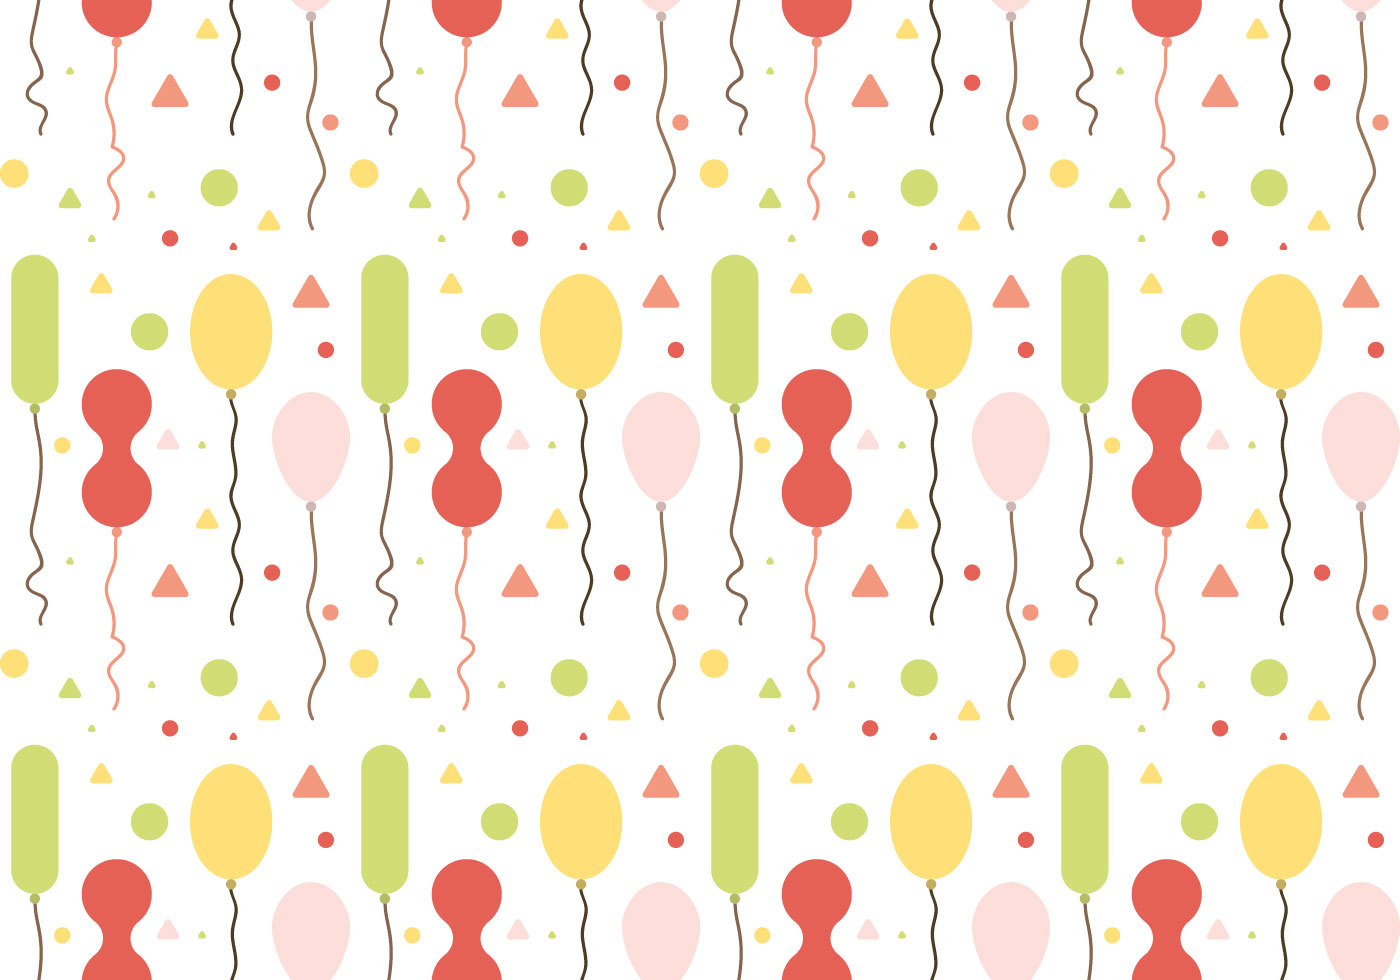 Little Cute Baby Girl Wallpaper Free Balloons Pattern Vector 1 Download Free Vectors